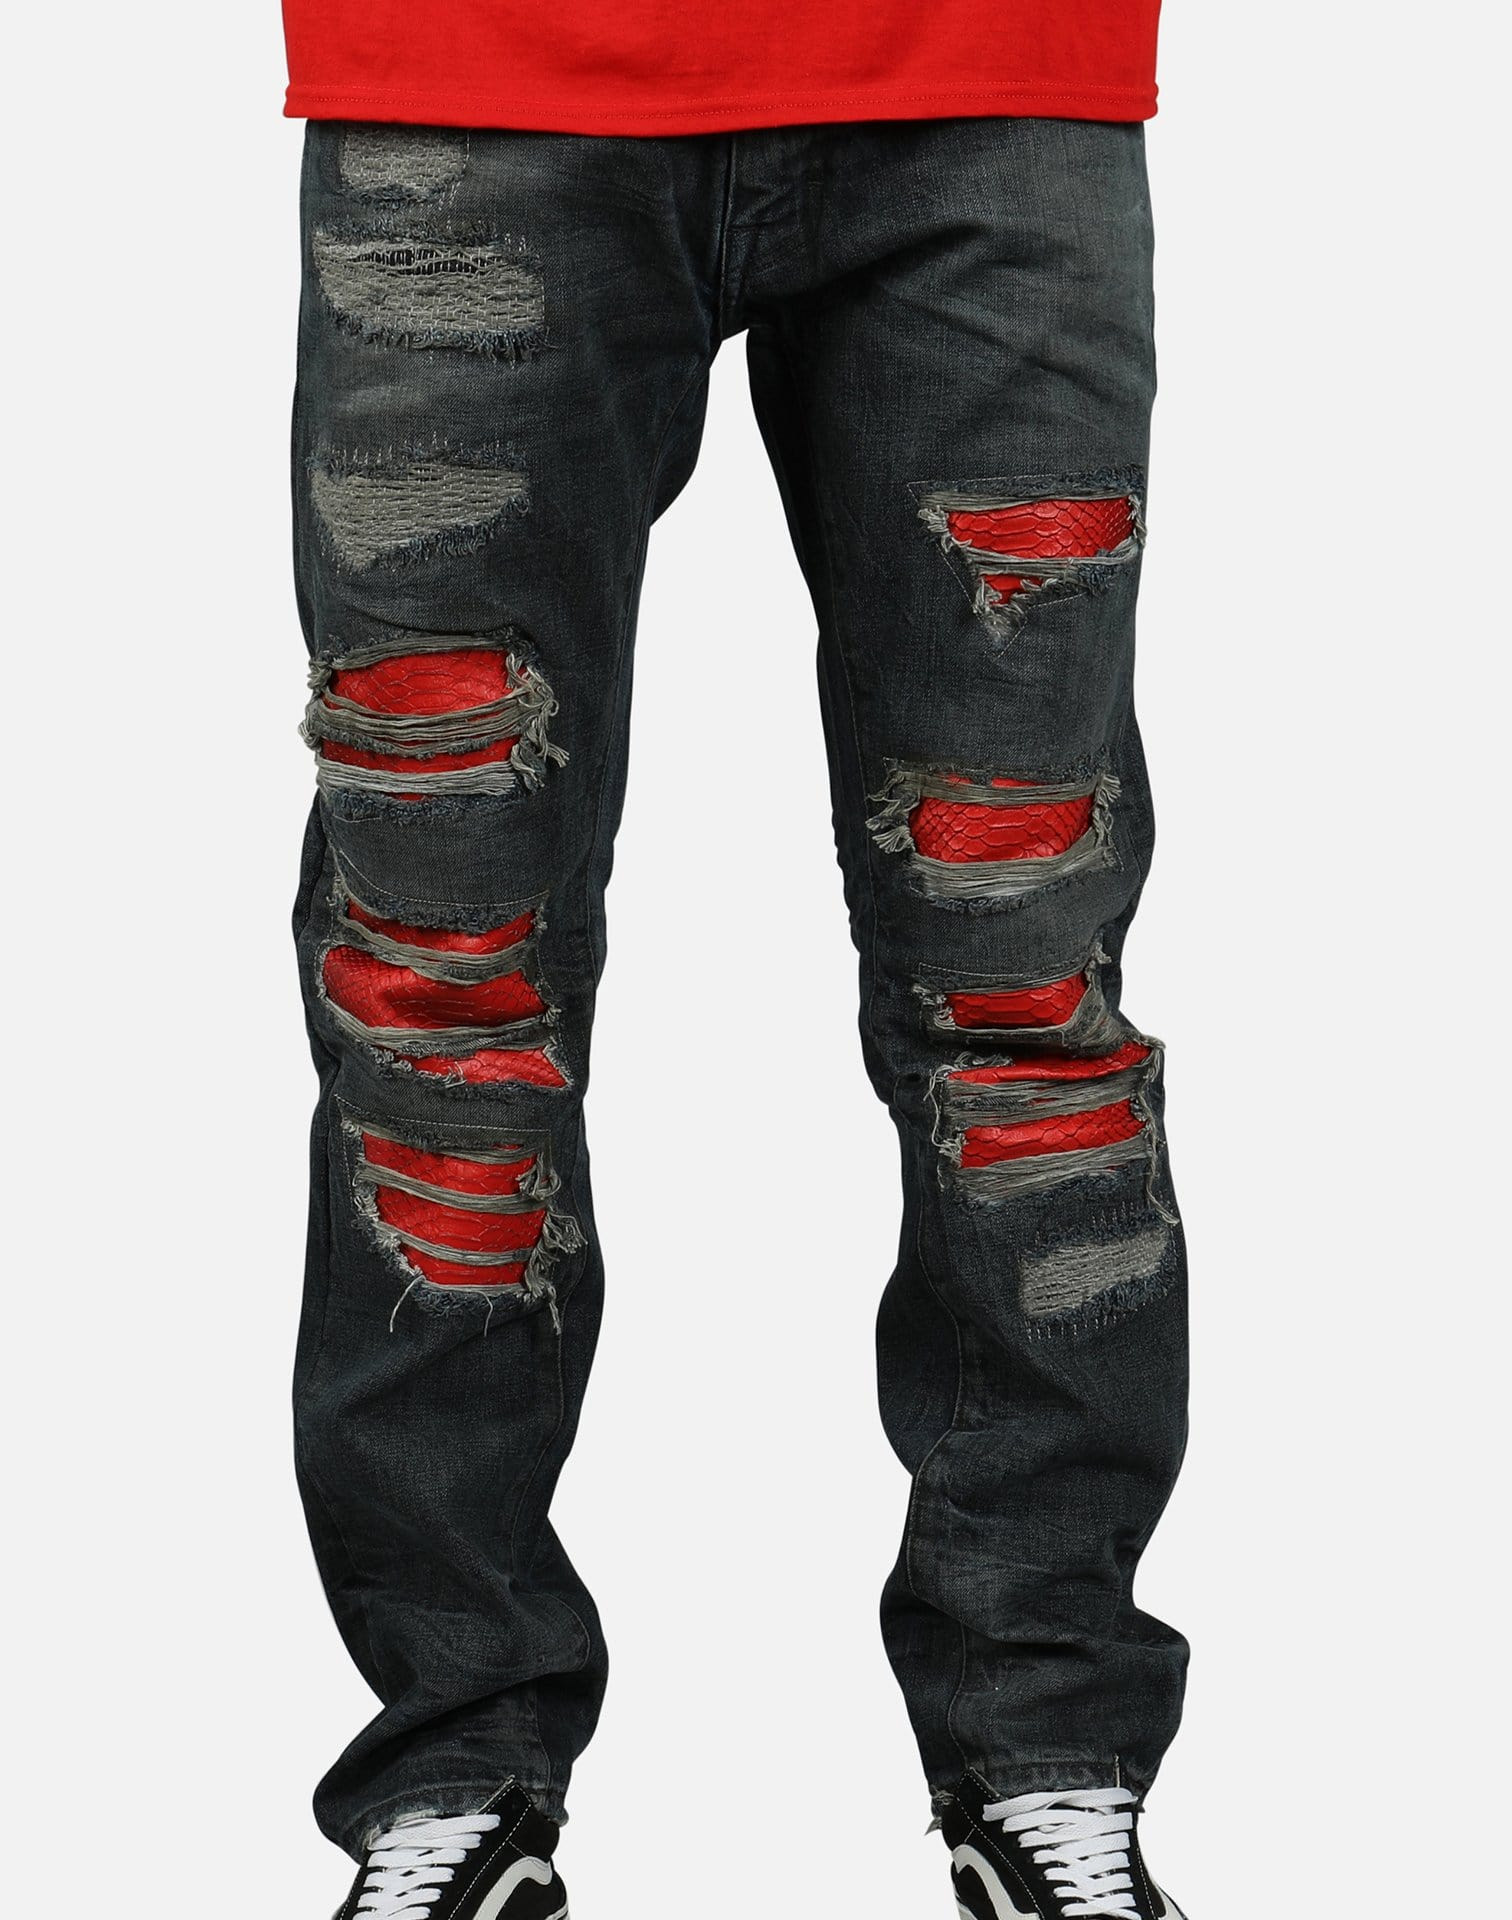 CO2 Men's Ripped Jeans